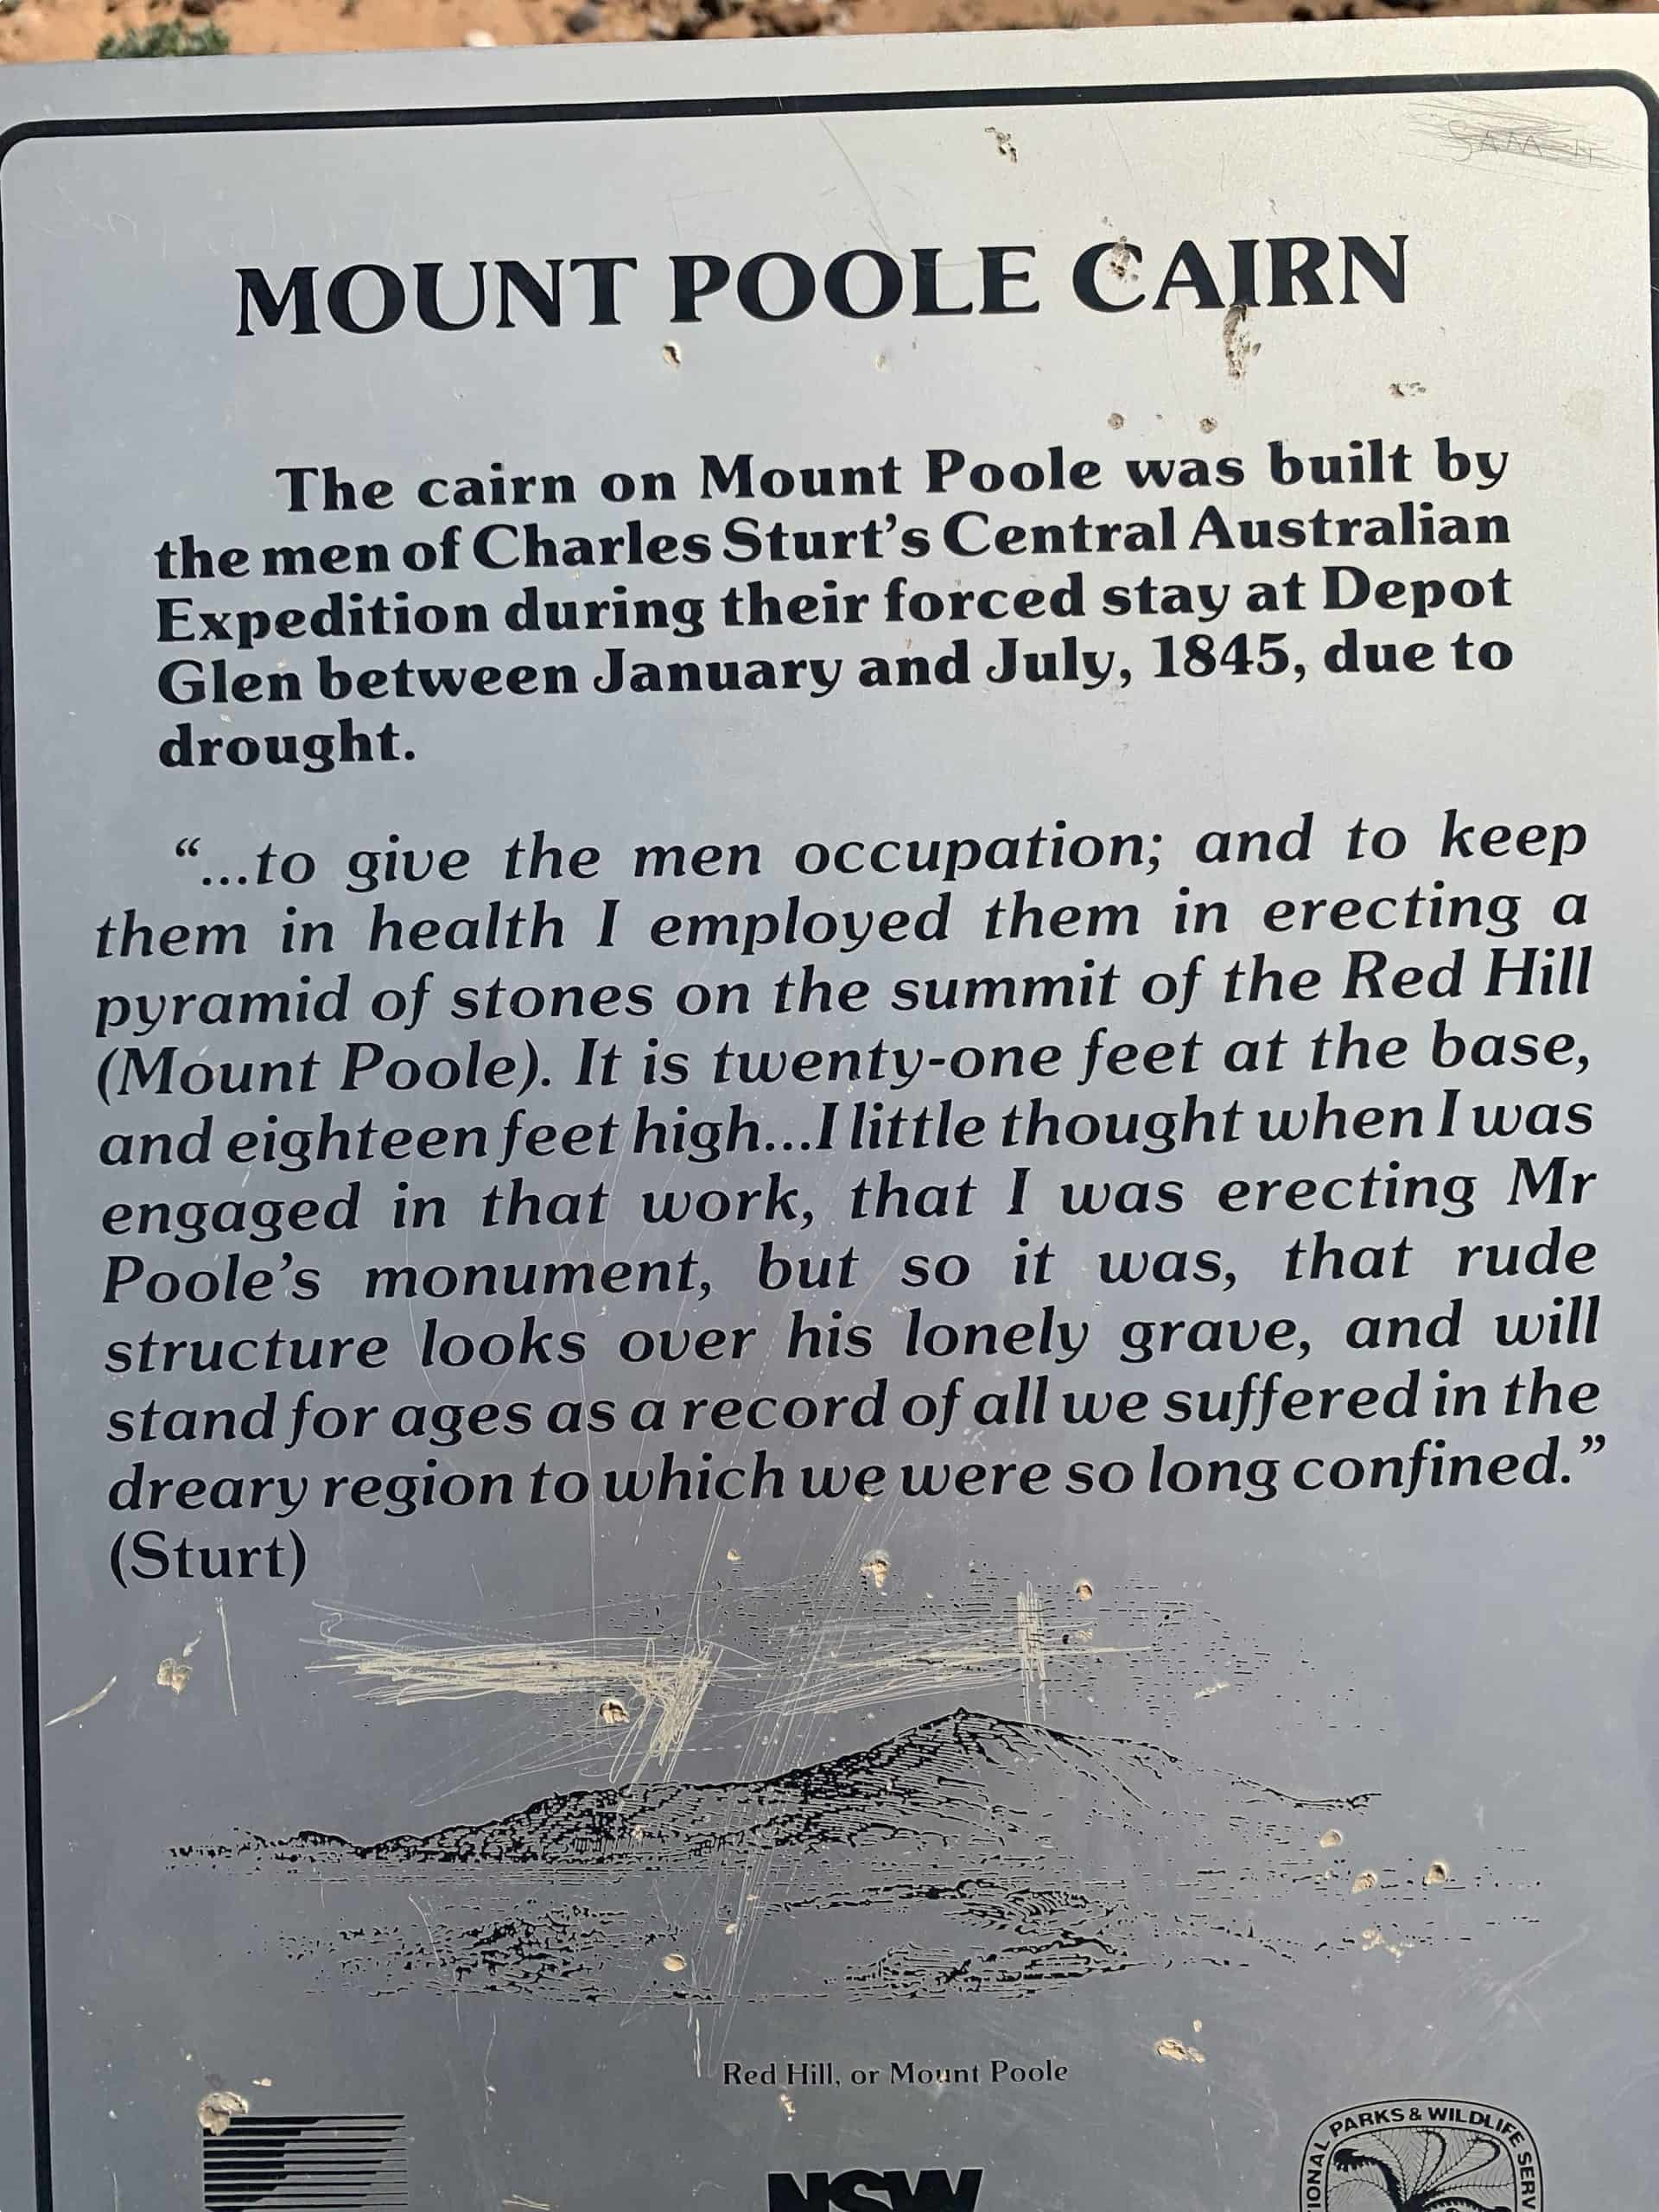 Mount Poole Cairn